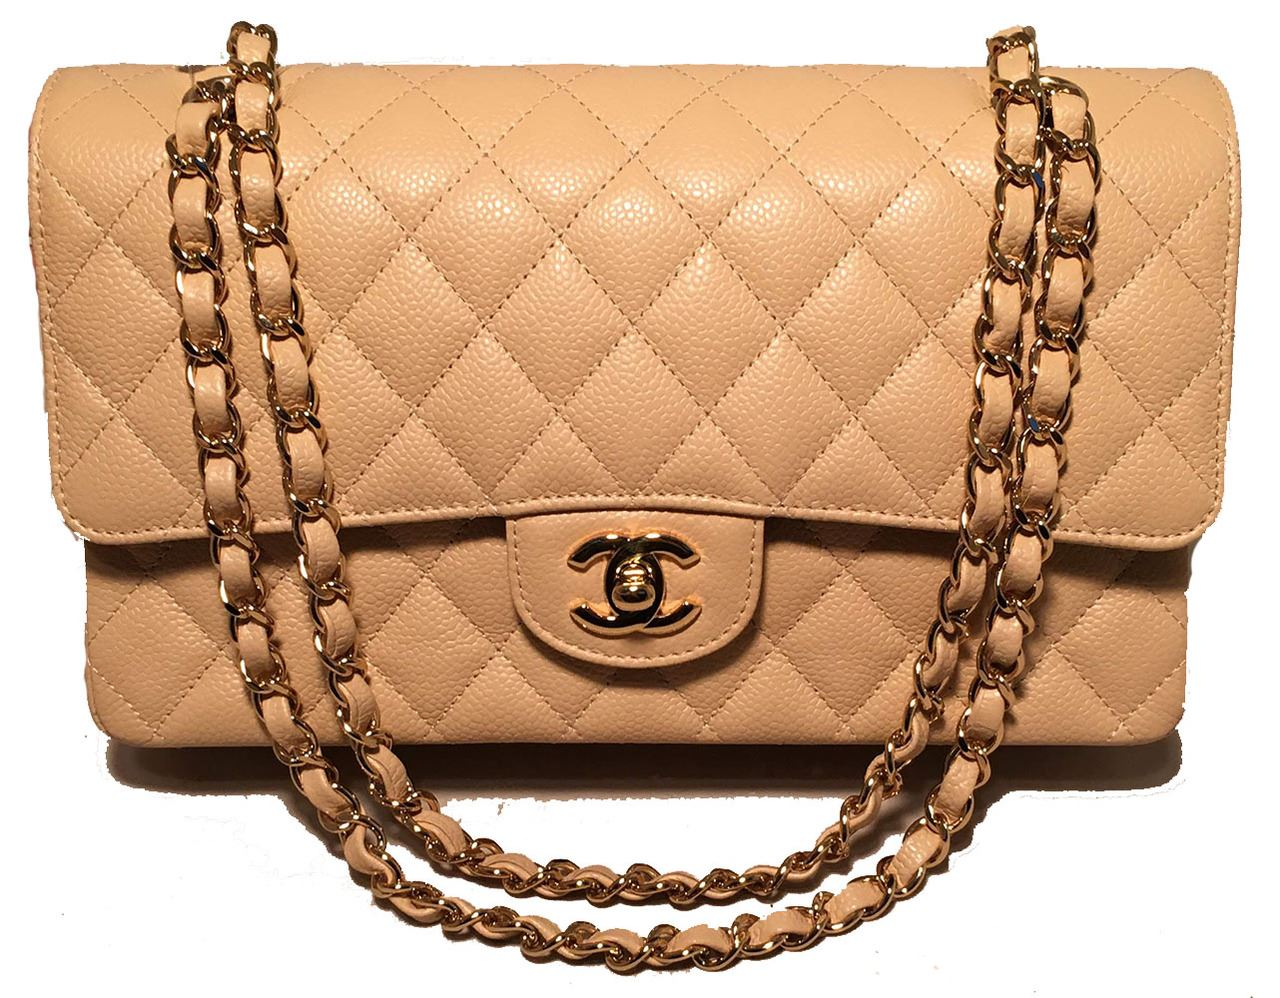 ca4eb20382a0 Image 1 : Chanel Nude 10inch Quilted Caviar 2.55 Double Flap Classic  Shoulder Bag ...